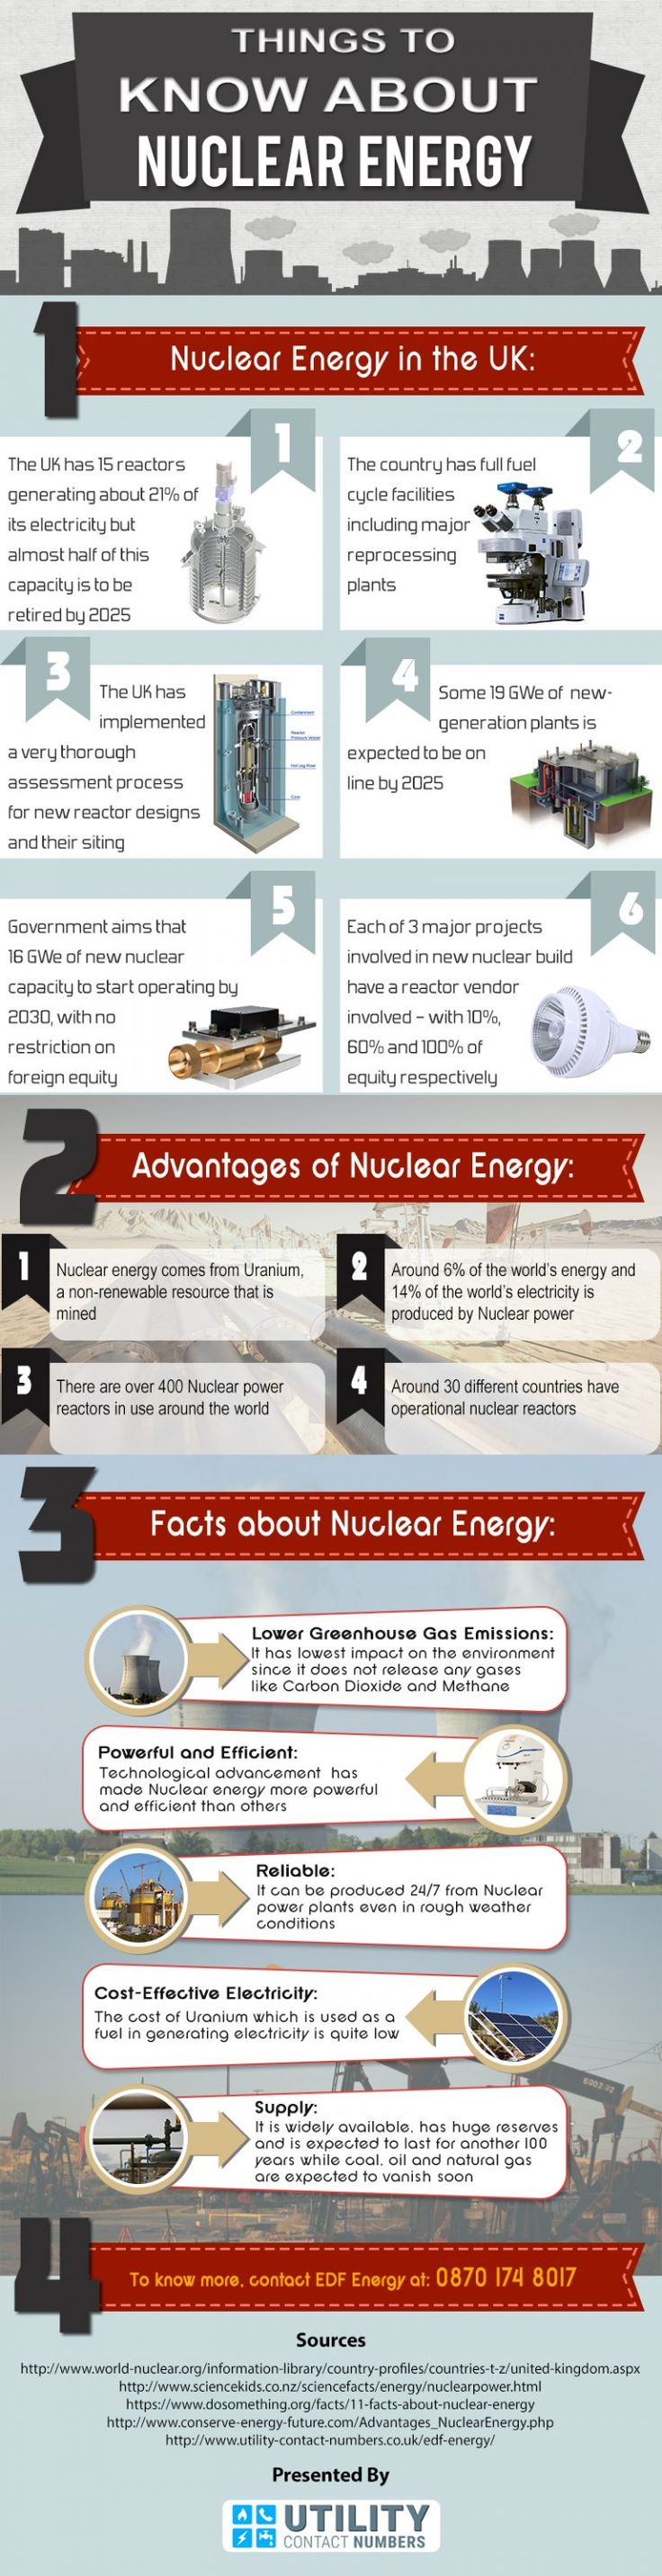 This info-graphic titled 'Things to Know about Nuclear Energy' is created with the central theme of telling customers about nuclear energy. http://www.utility-contact-numbers.co.uk/learn-facts-advantages-energy-edf-energy-infographic/